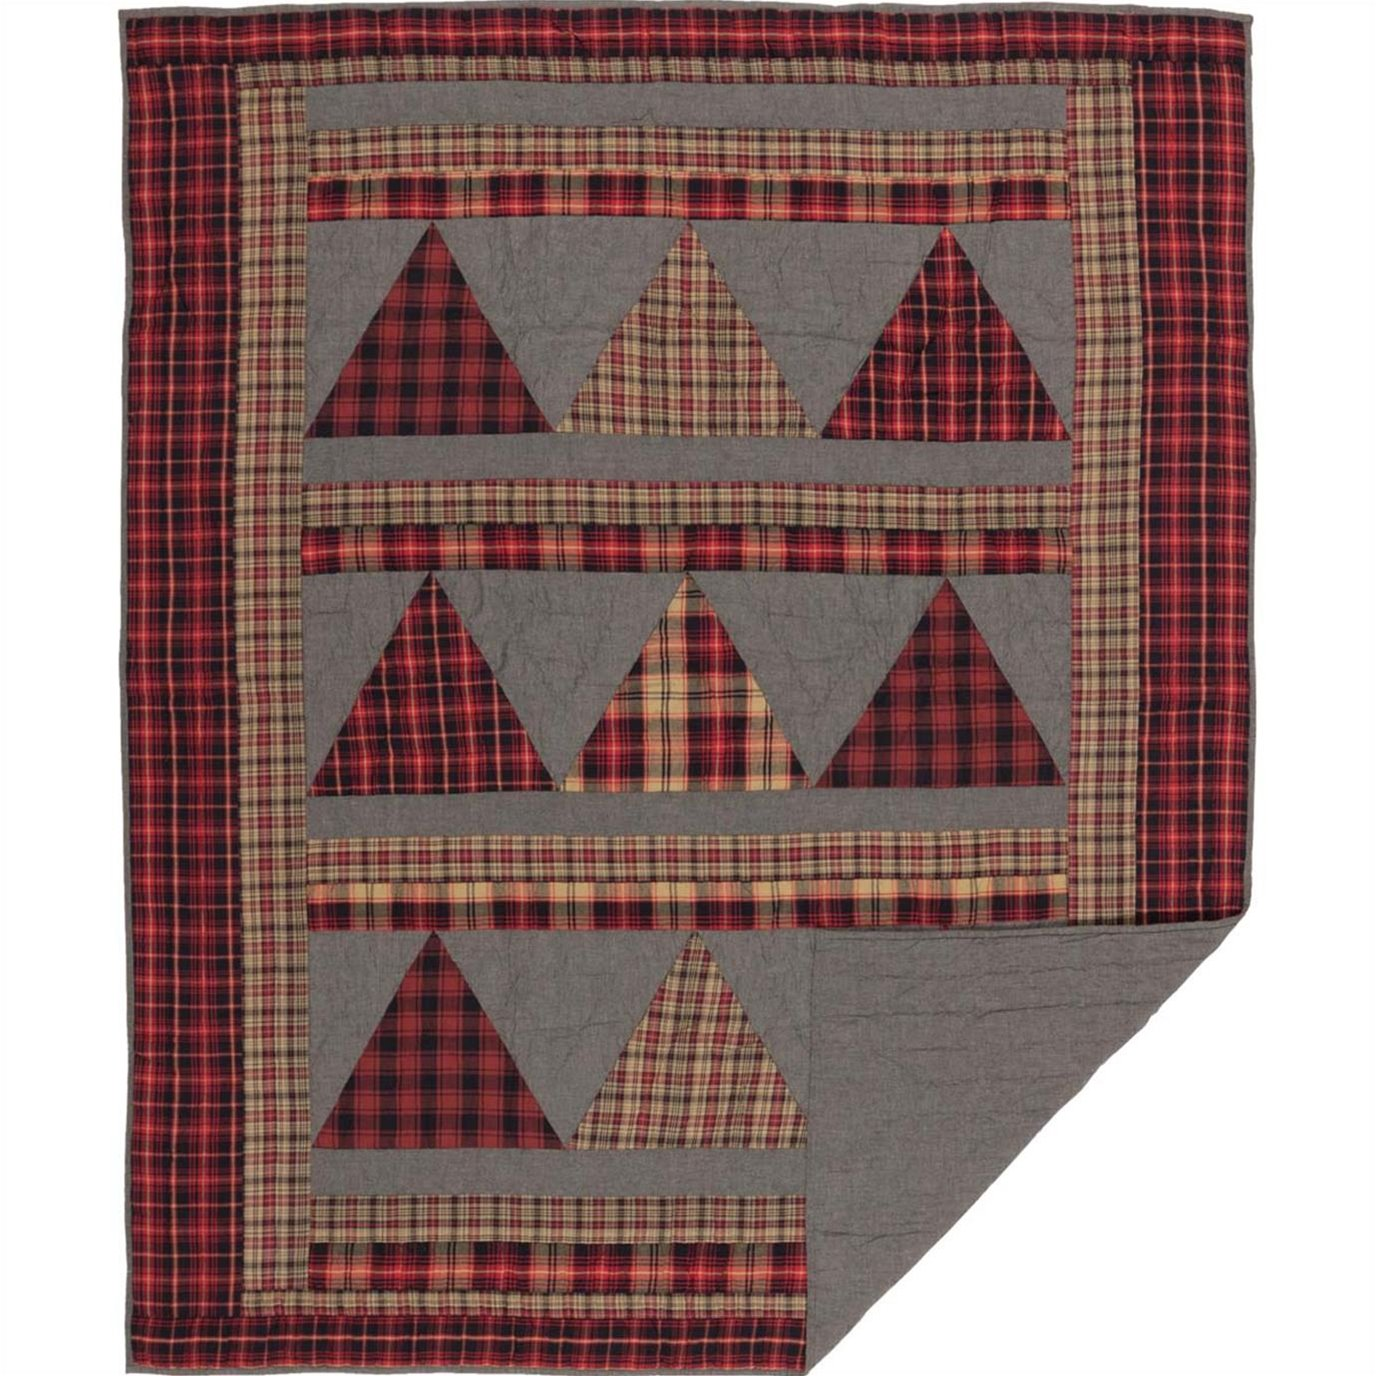 Andes Quilted Throw 60x50 By Seasons Crest Vhc Brands